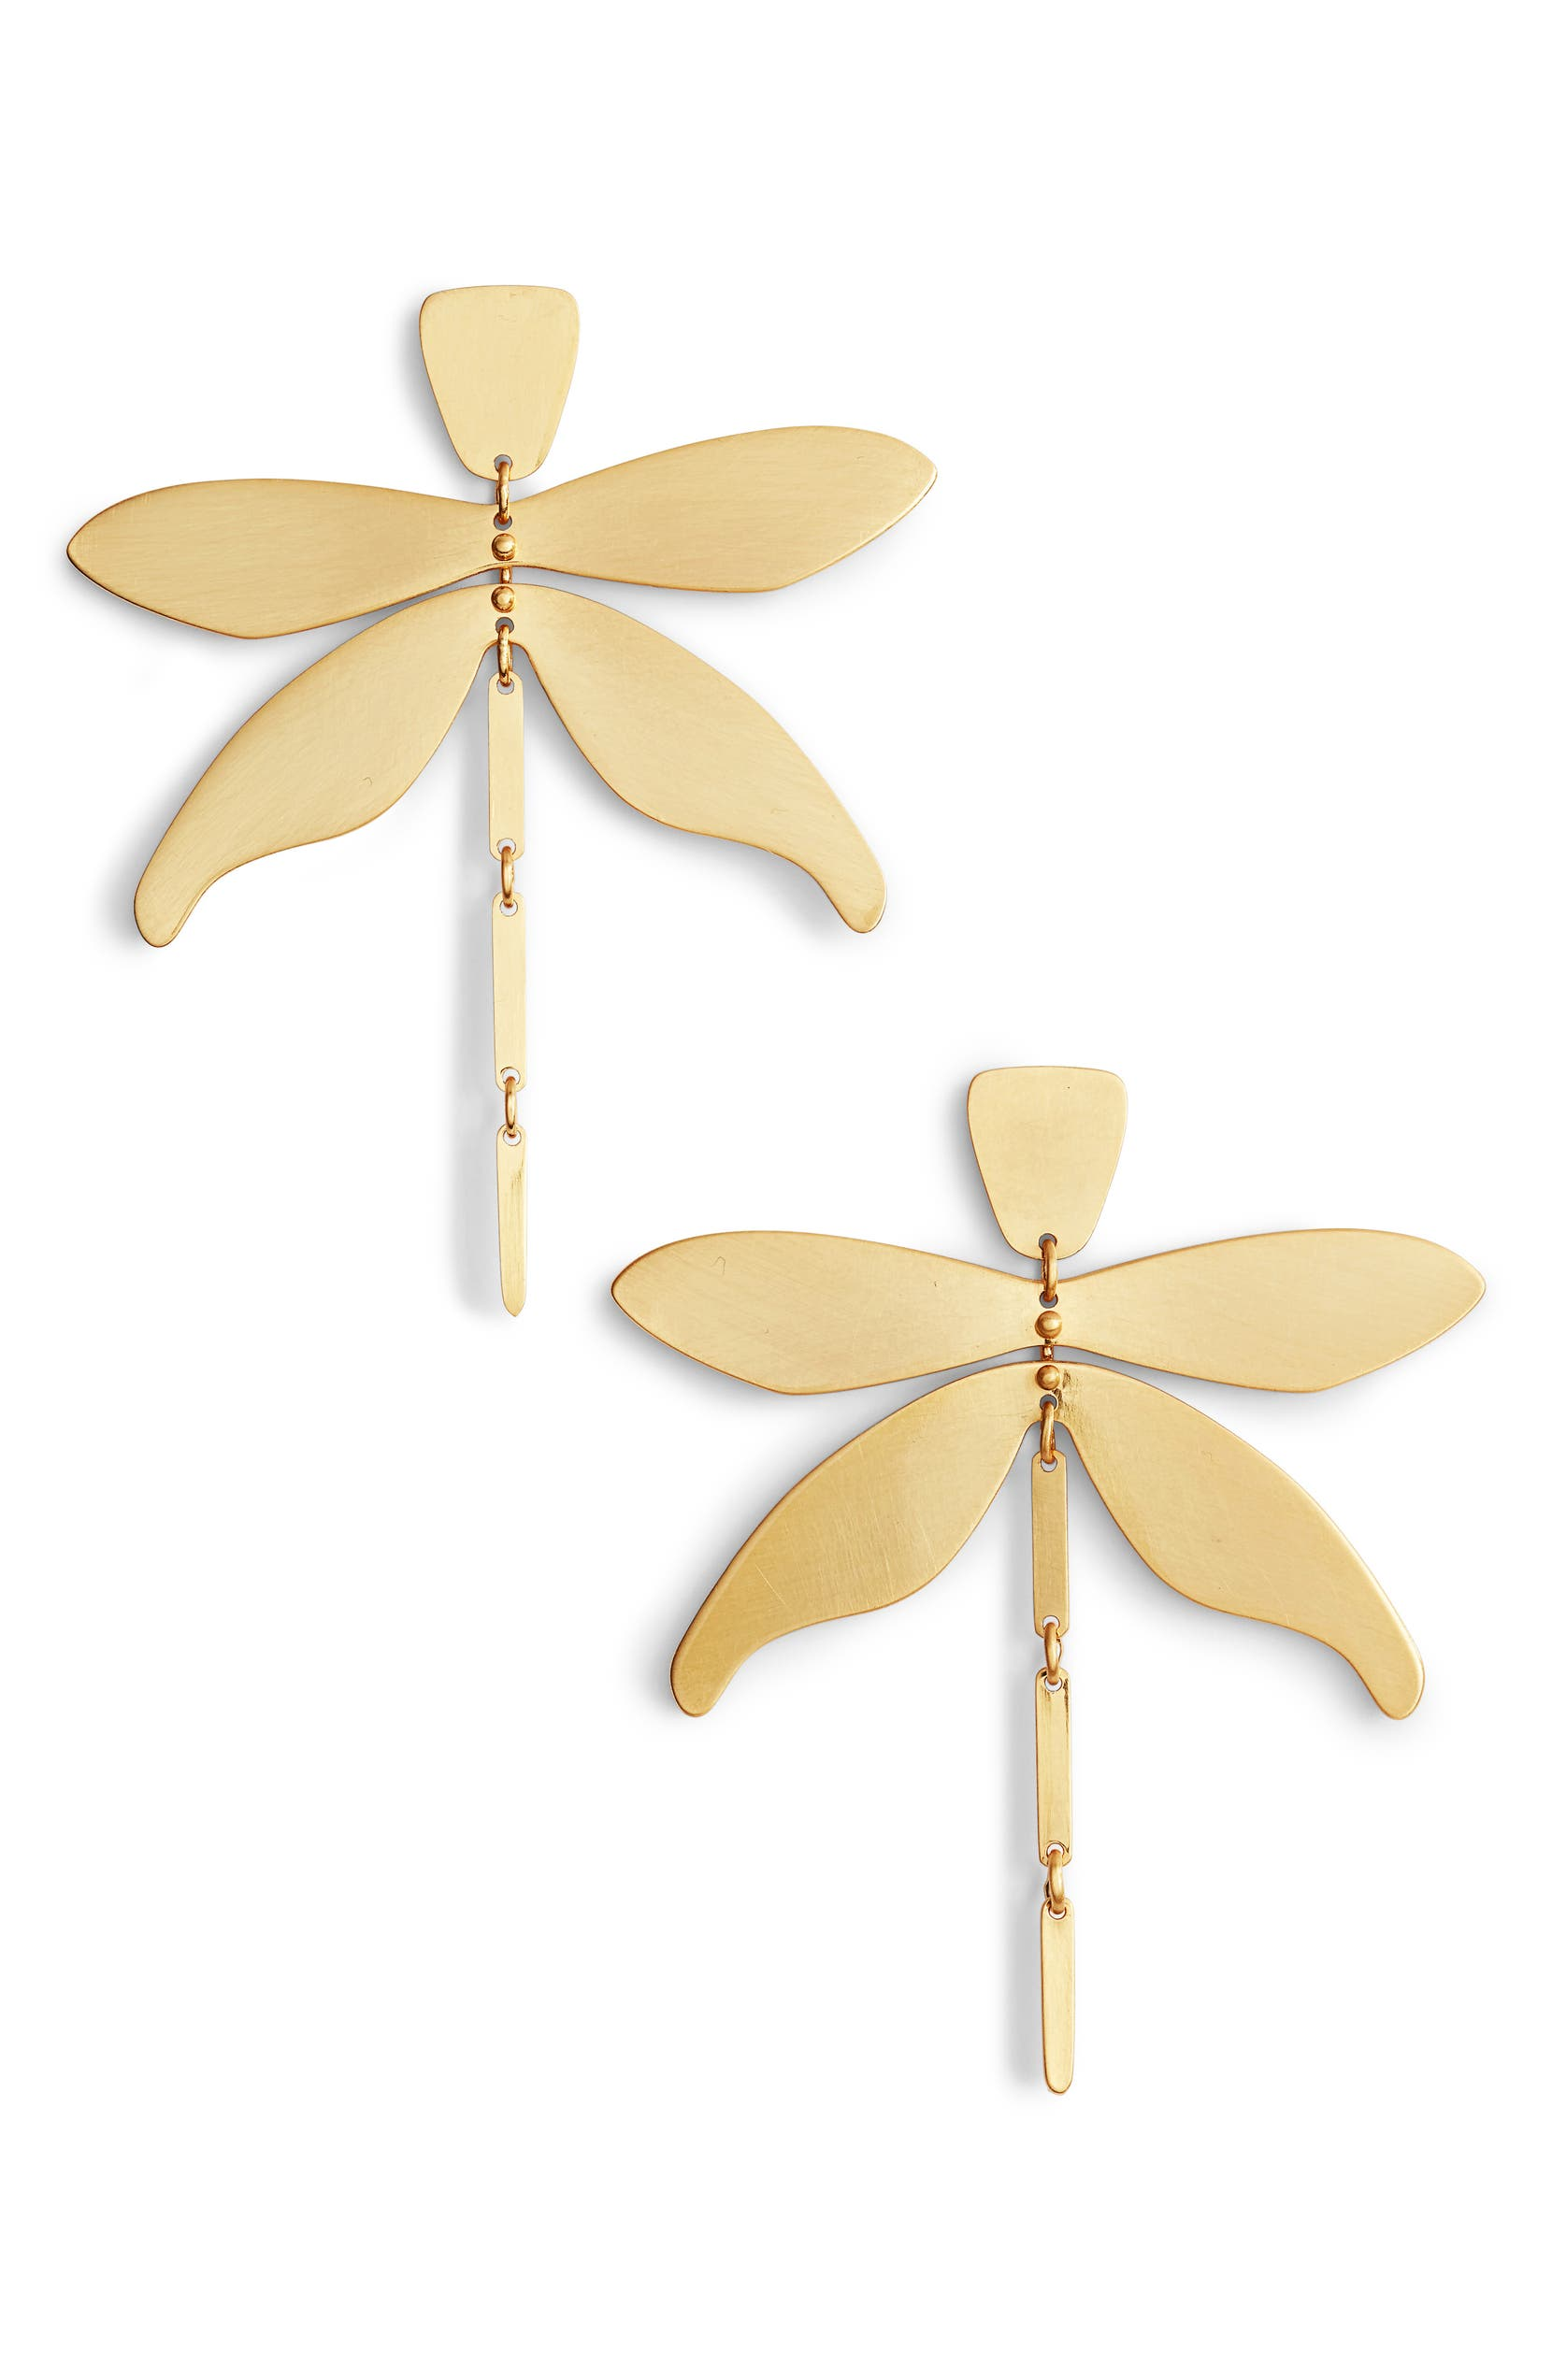 Tory Burch Articulated Dragonfly Earrings | Nordstrom